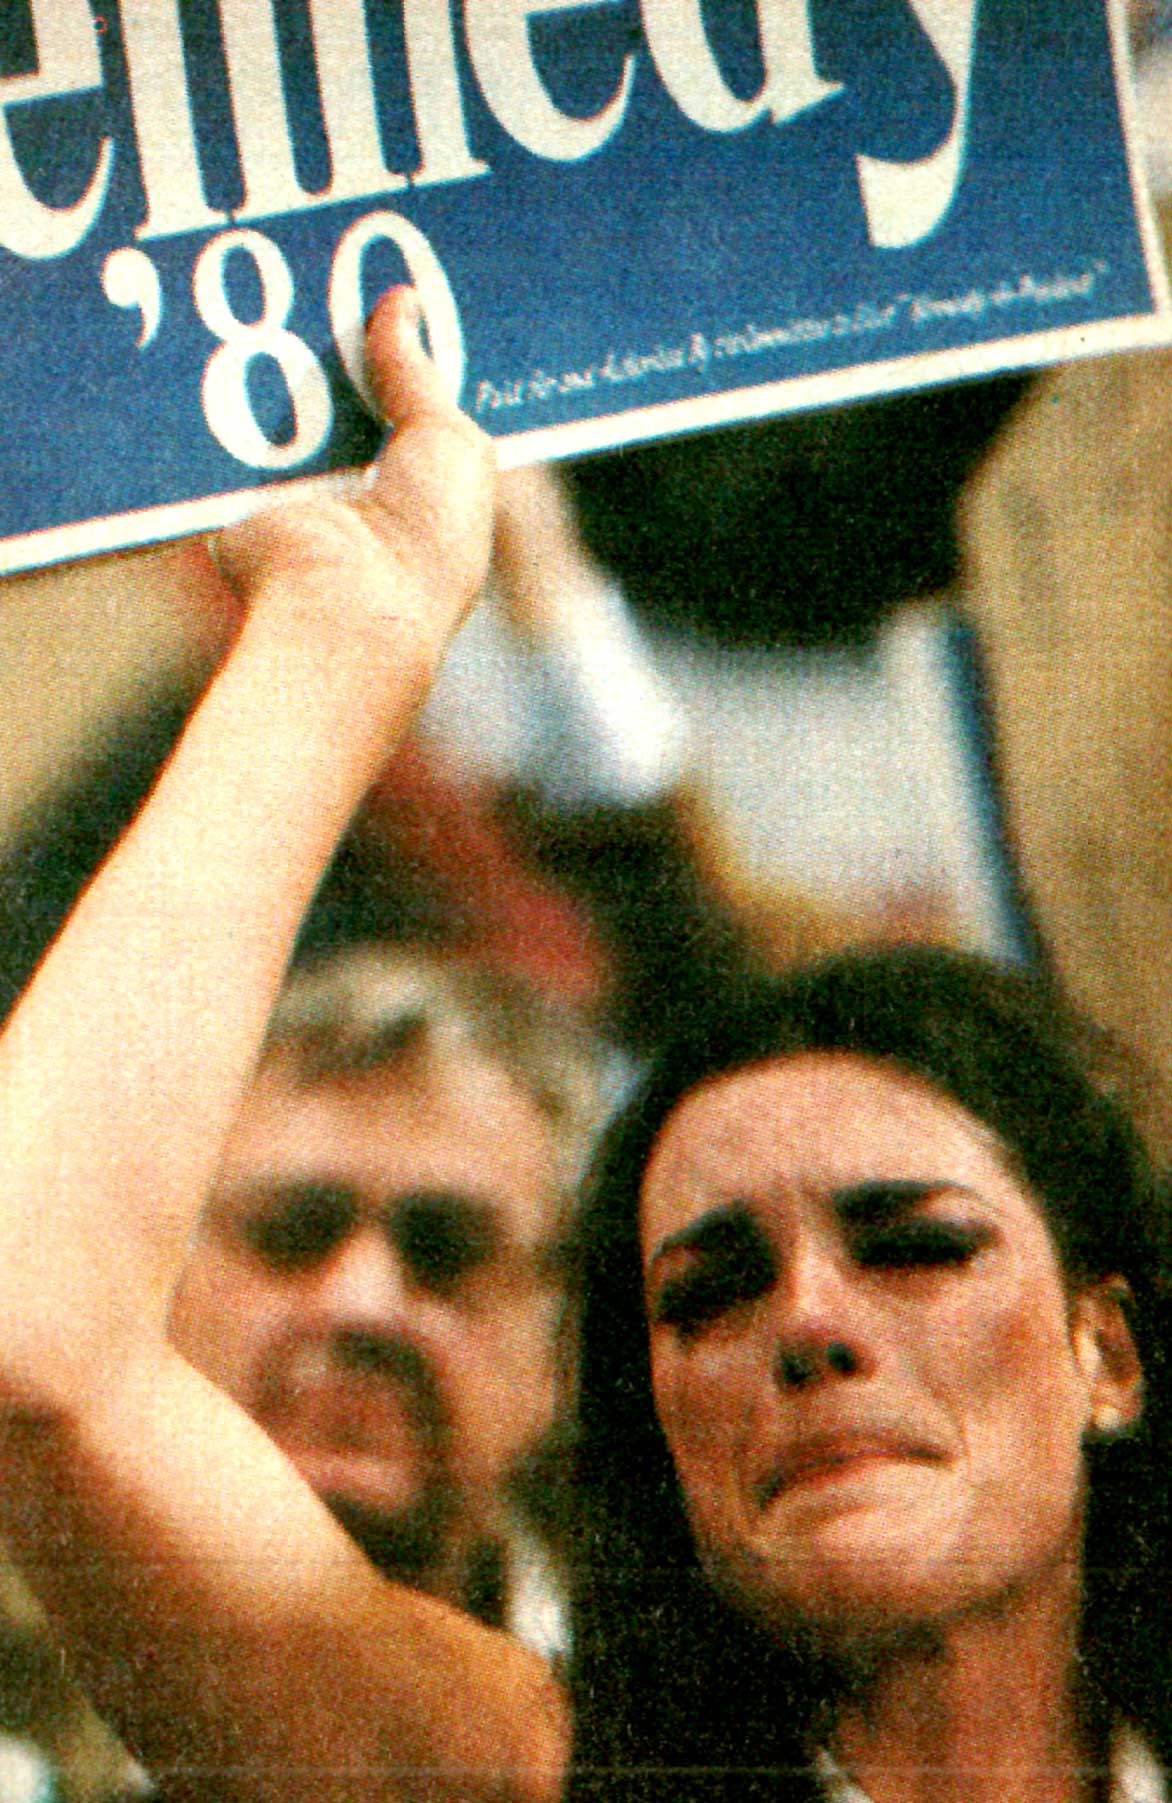 1980 Democratic Convention